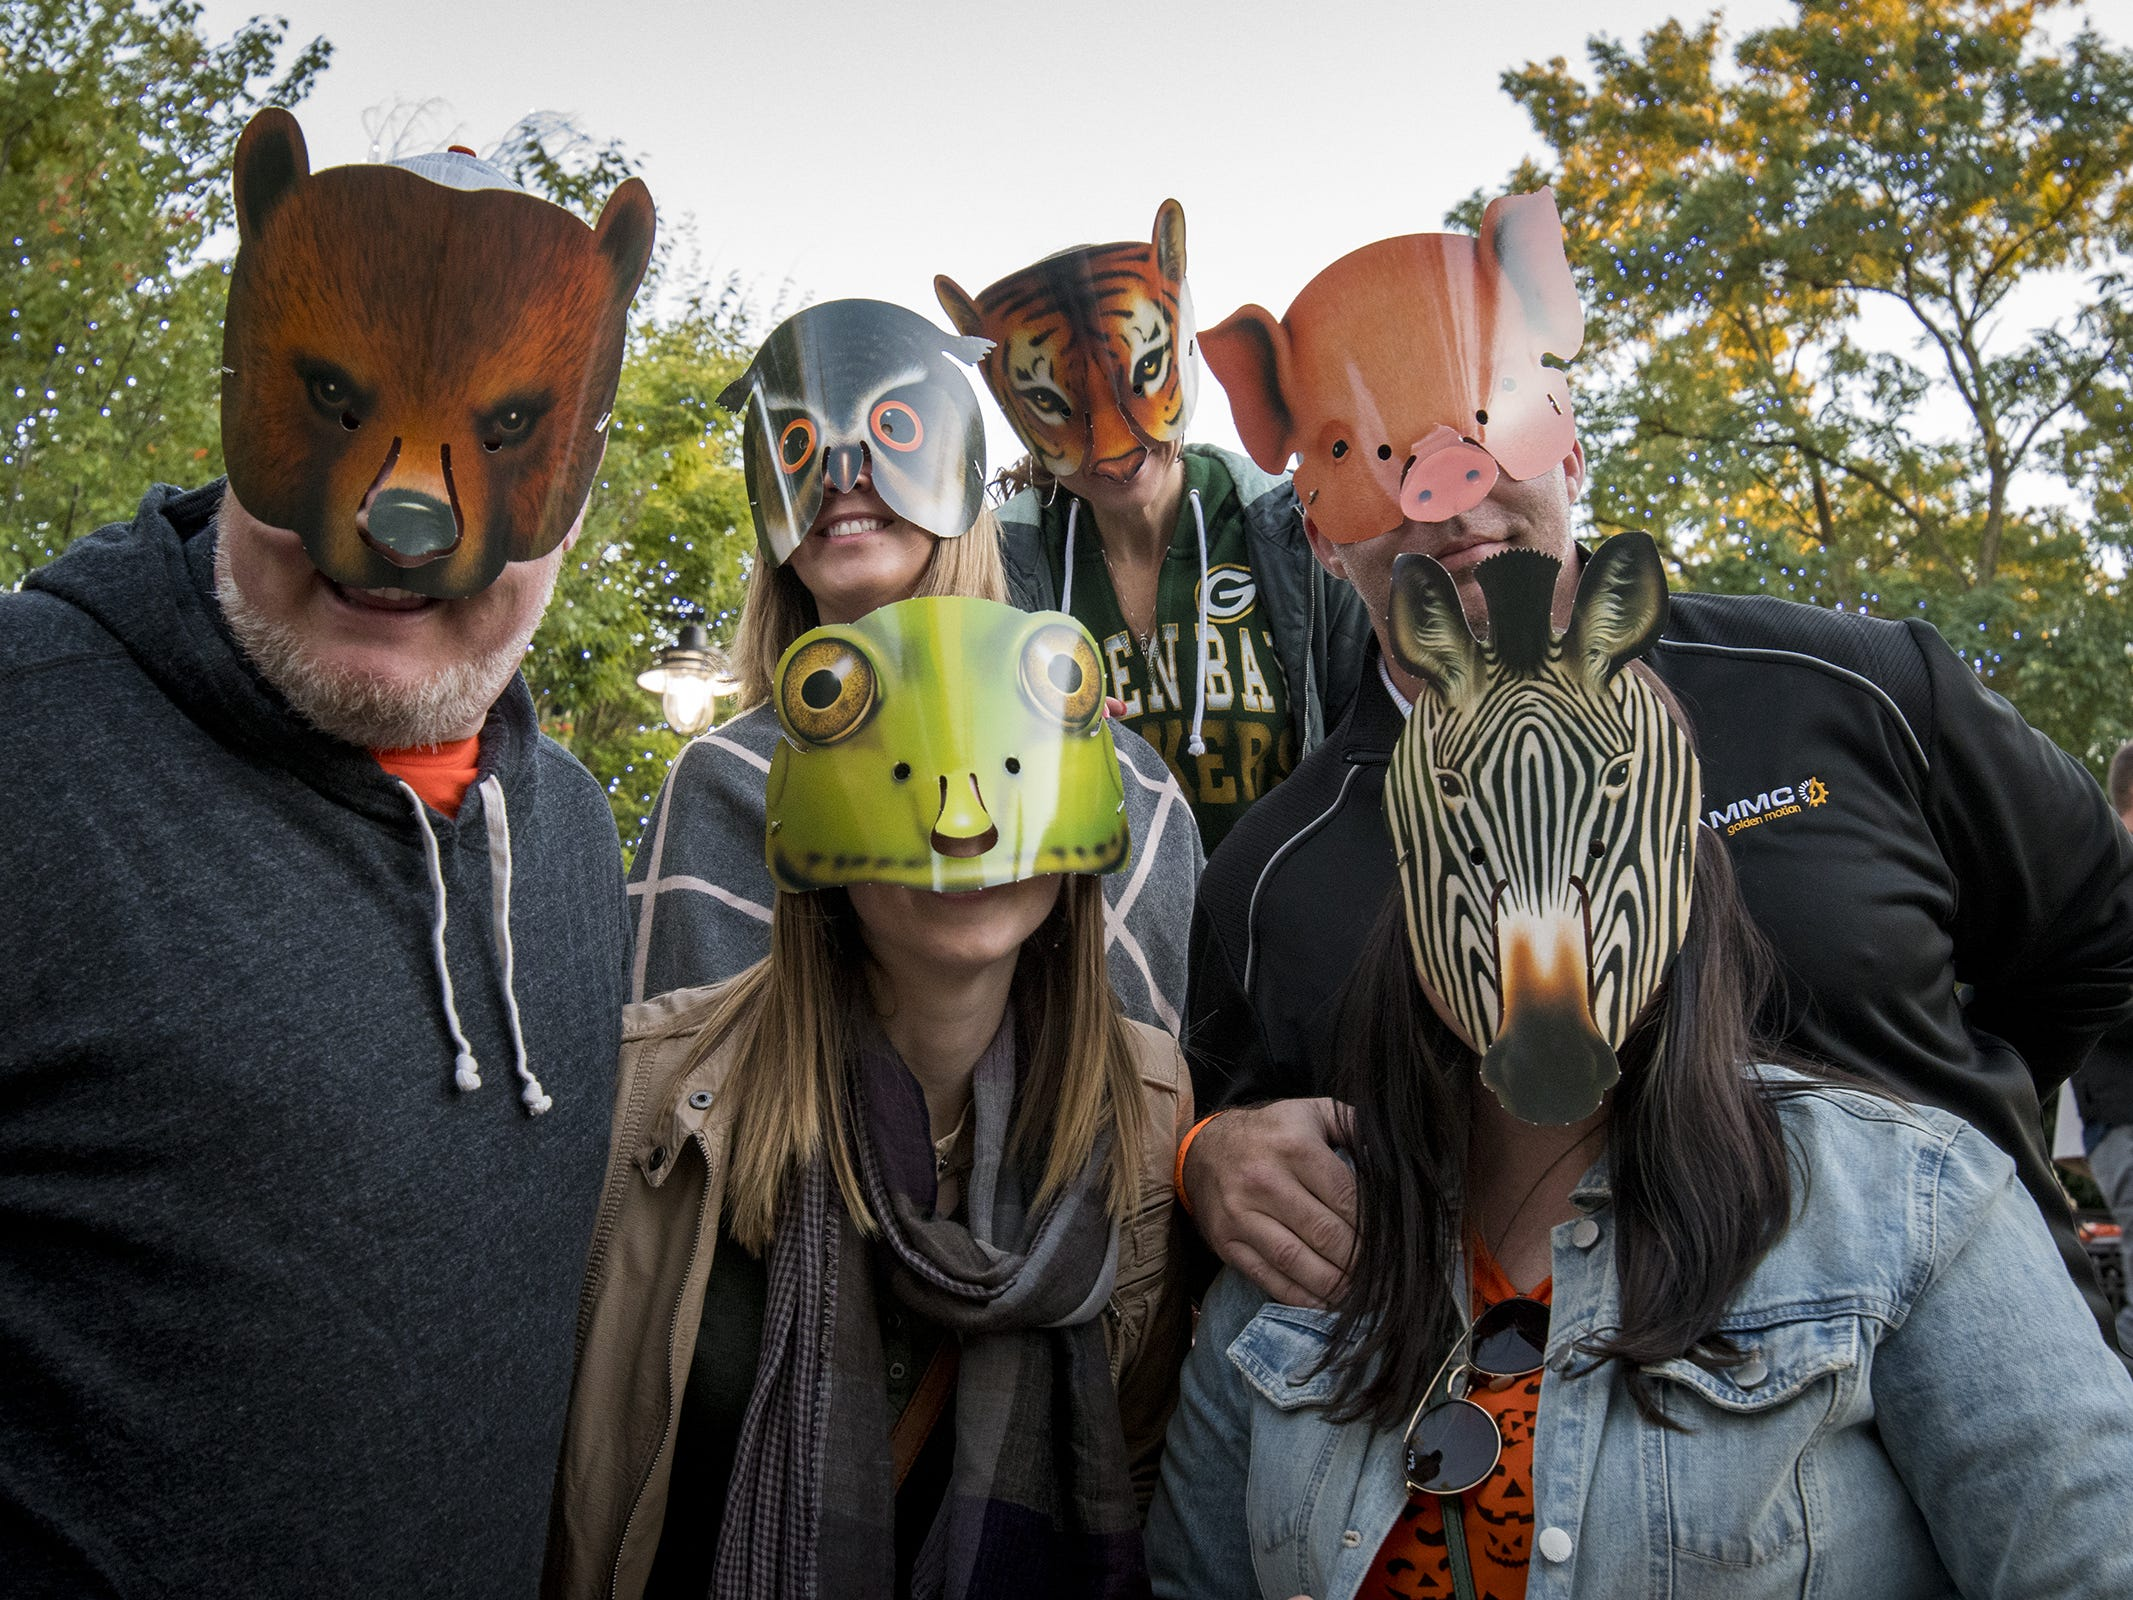 Chad Ishmael, Stephanie Gooney, Ken Budde, Michelle Campbell, Jennifer Ozimek and Becky Budde get into the spirit of the evening at Zoo Brew at the Cincinnati Zoo Thursday, Oct. 11.